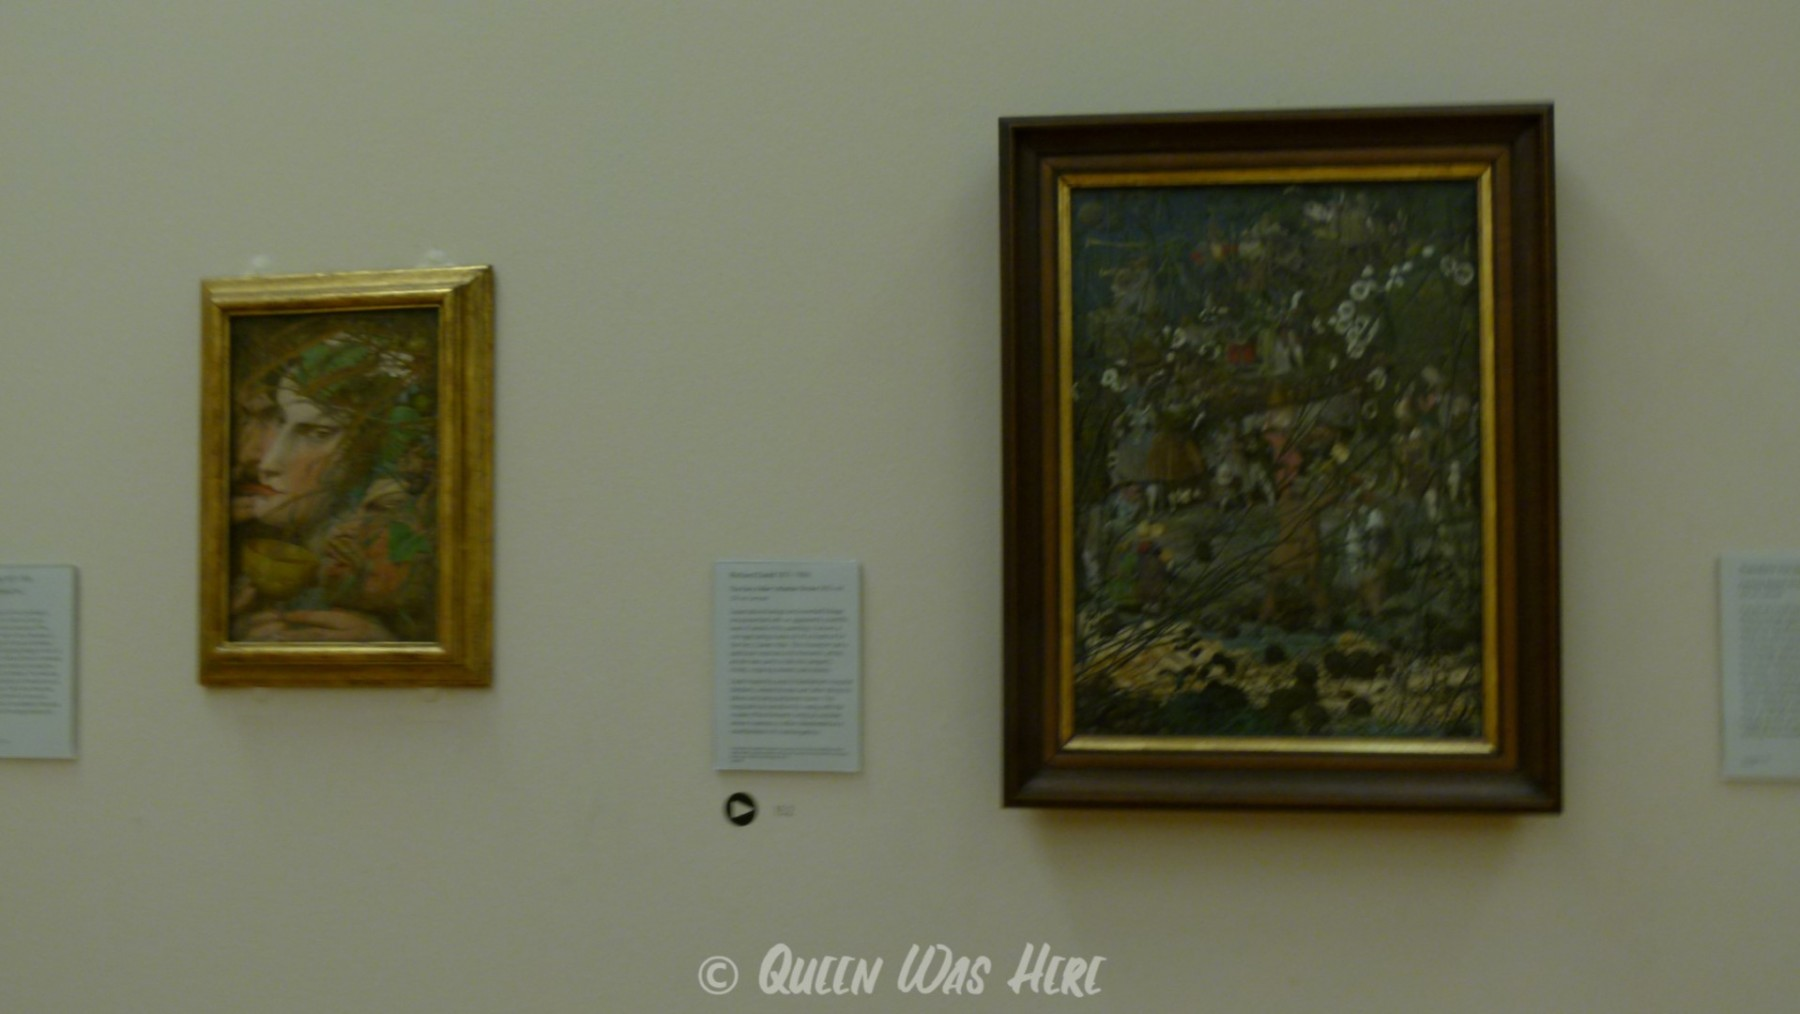 The-Fairy-Fellers-Master-Stroke-Queen-London-Tate-15